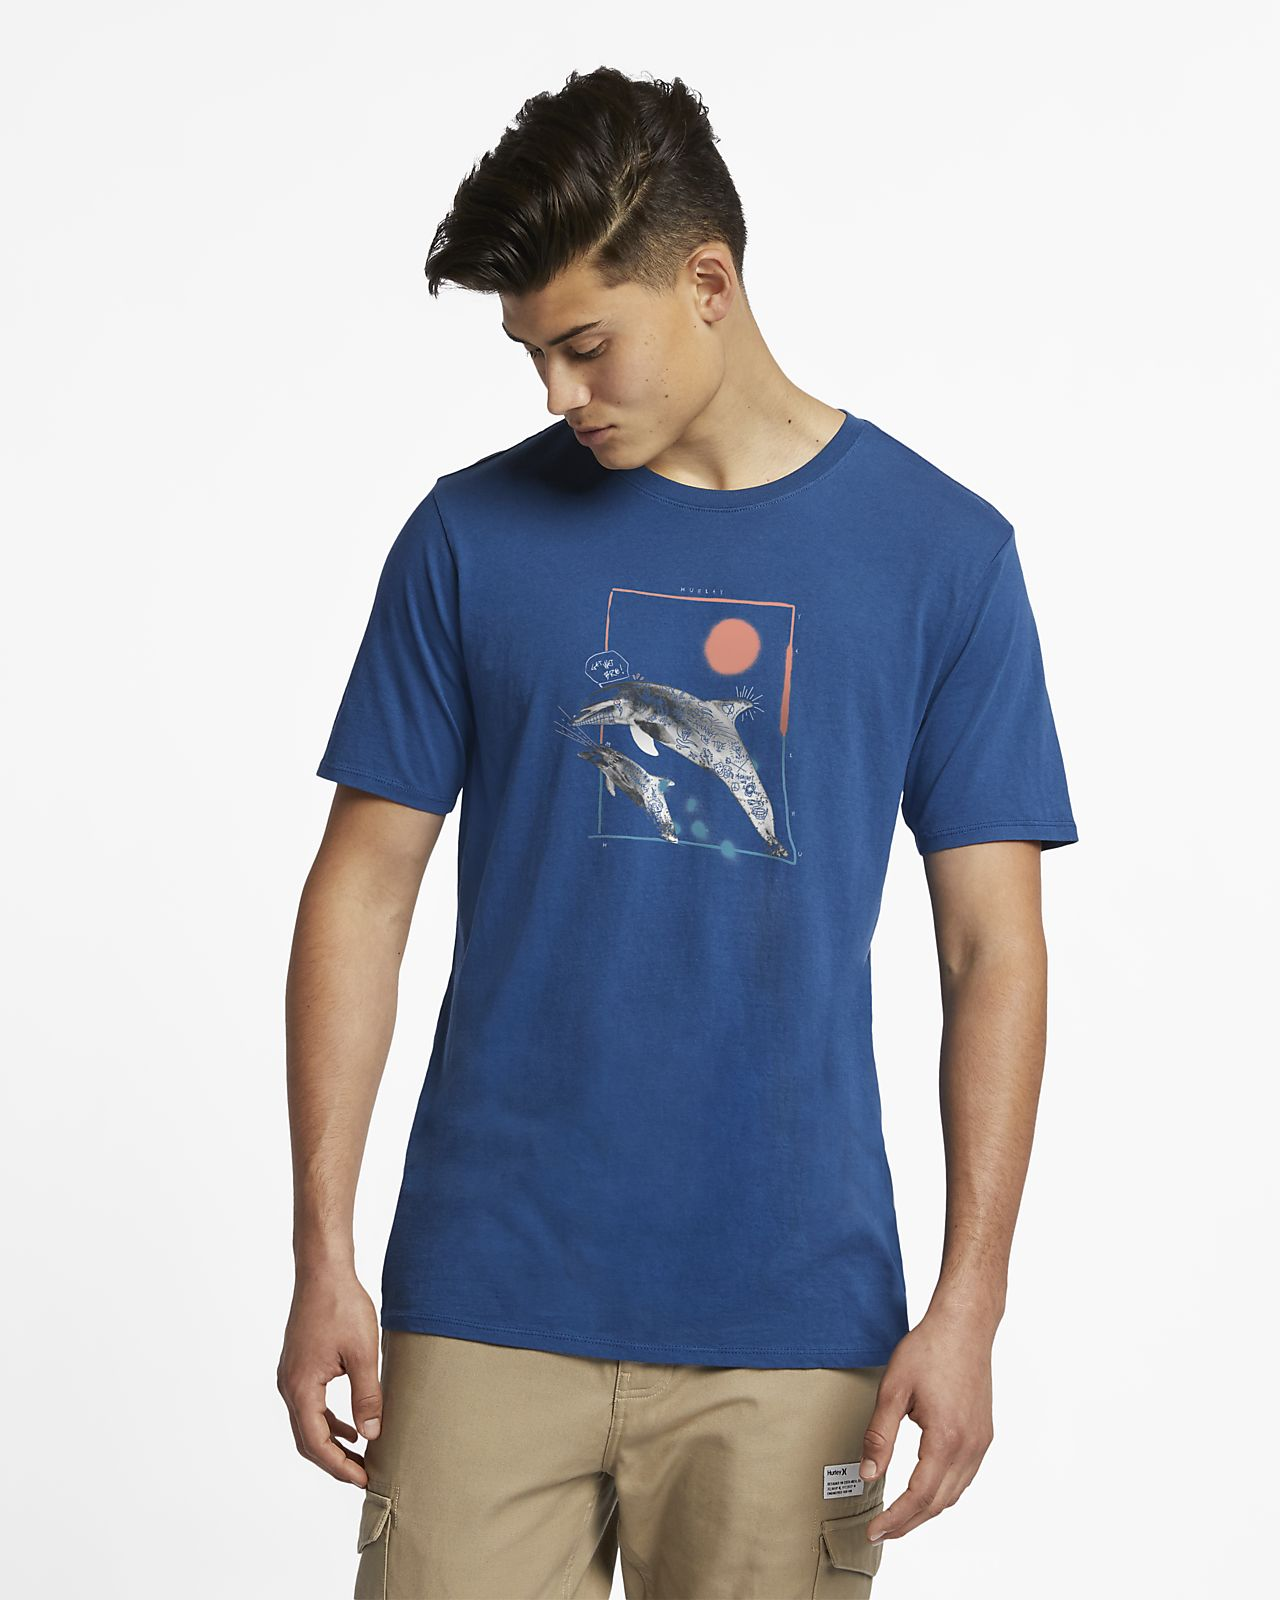 Hurley Dolphin Punks Men's T-Shirt